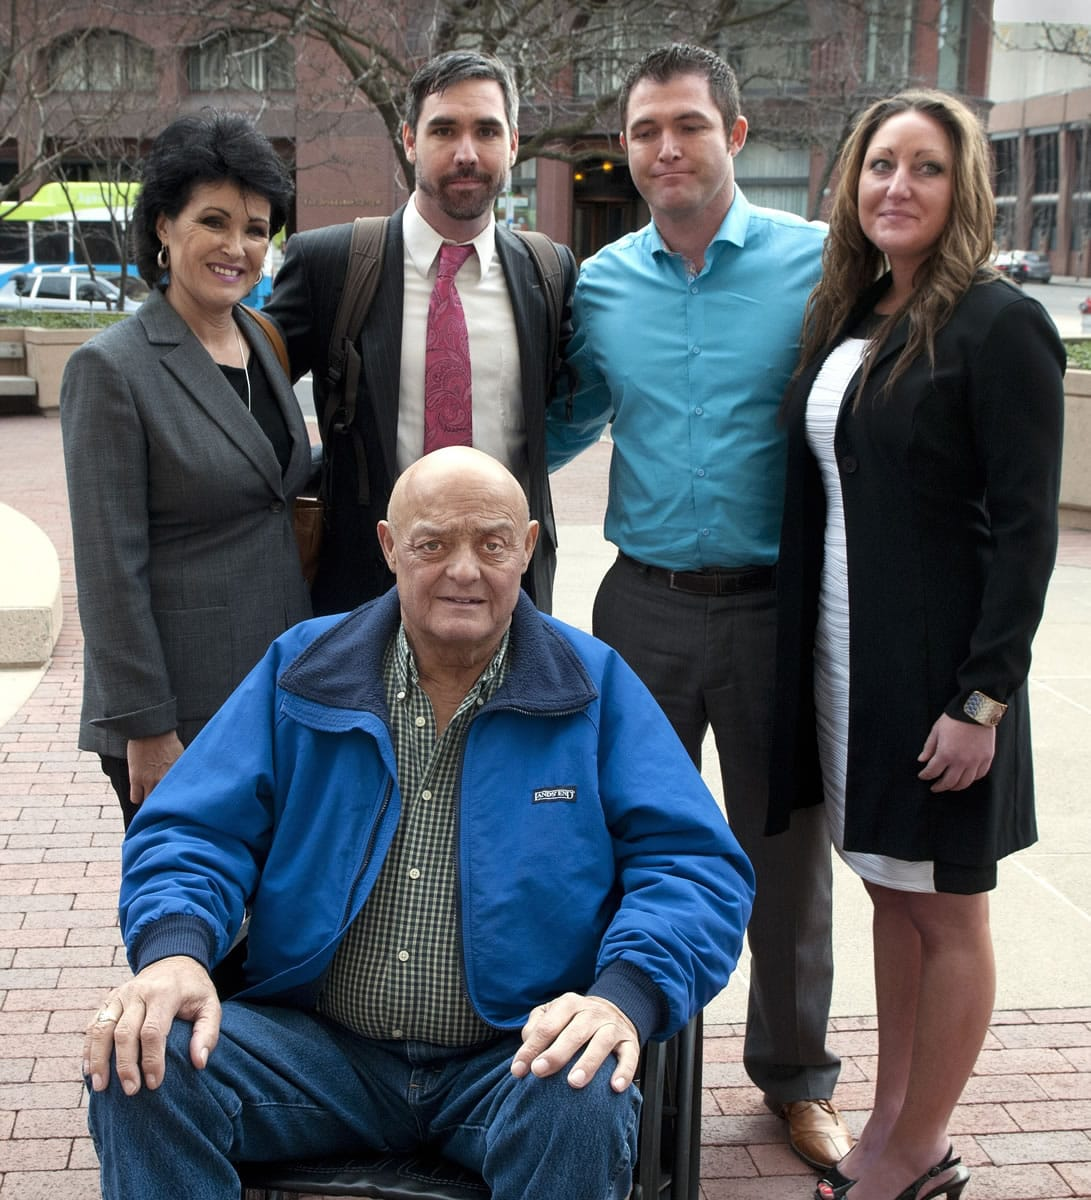 Larry Harvey is seated in front of, from left, Rhonda Lee Firestack-Harvey, Jason Zucker, Rolland Gregg and Michelle Gregg outside the Thomas S. Foley United States Courthouse in Spokane.